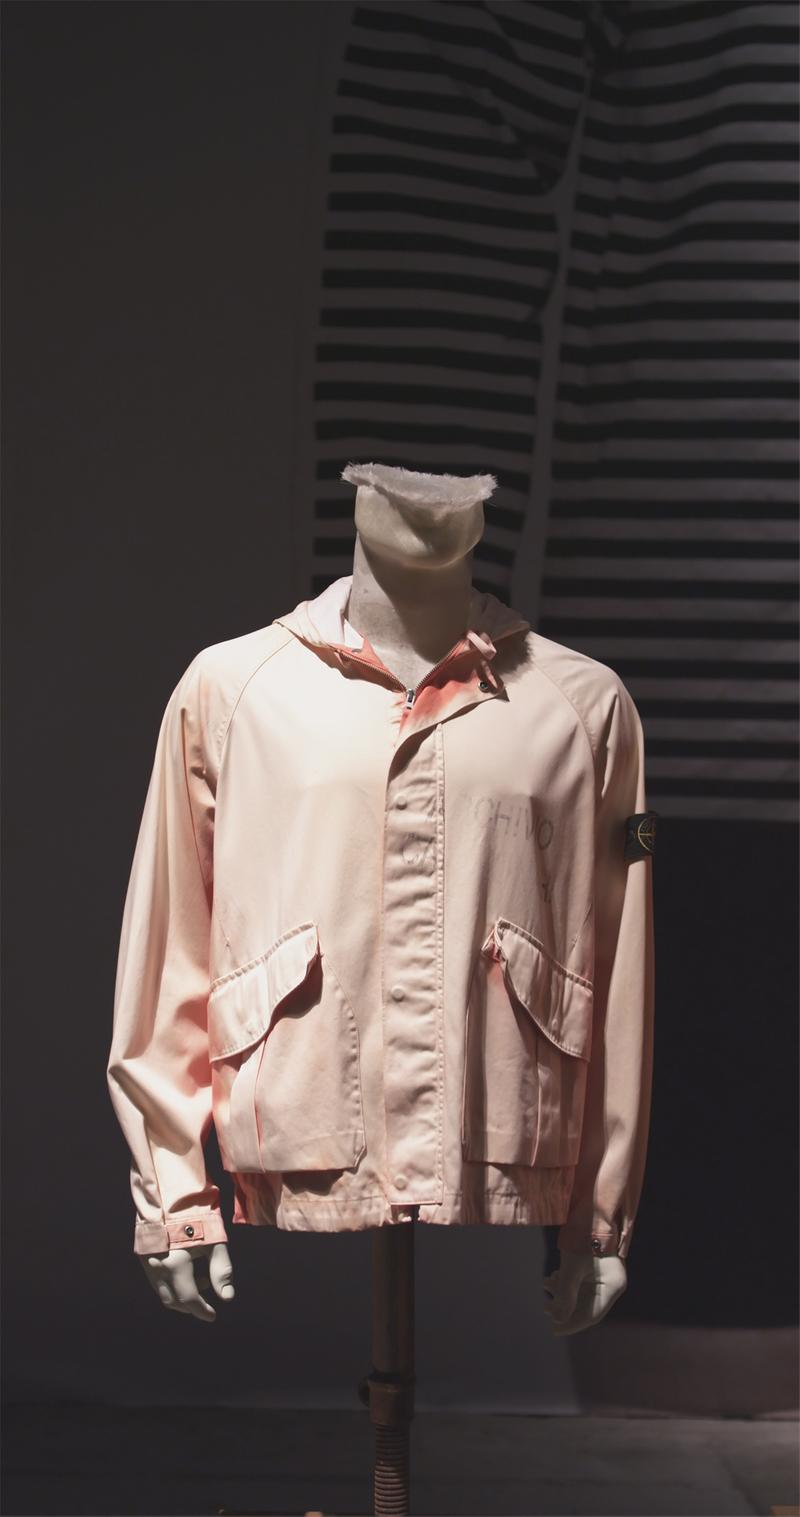 Light peach zip up jacket with side flap pockets, faded lettering on left chest and Stone Island badge on left sleeve displayed on mannequin bust